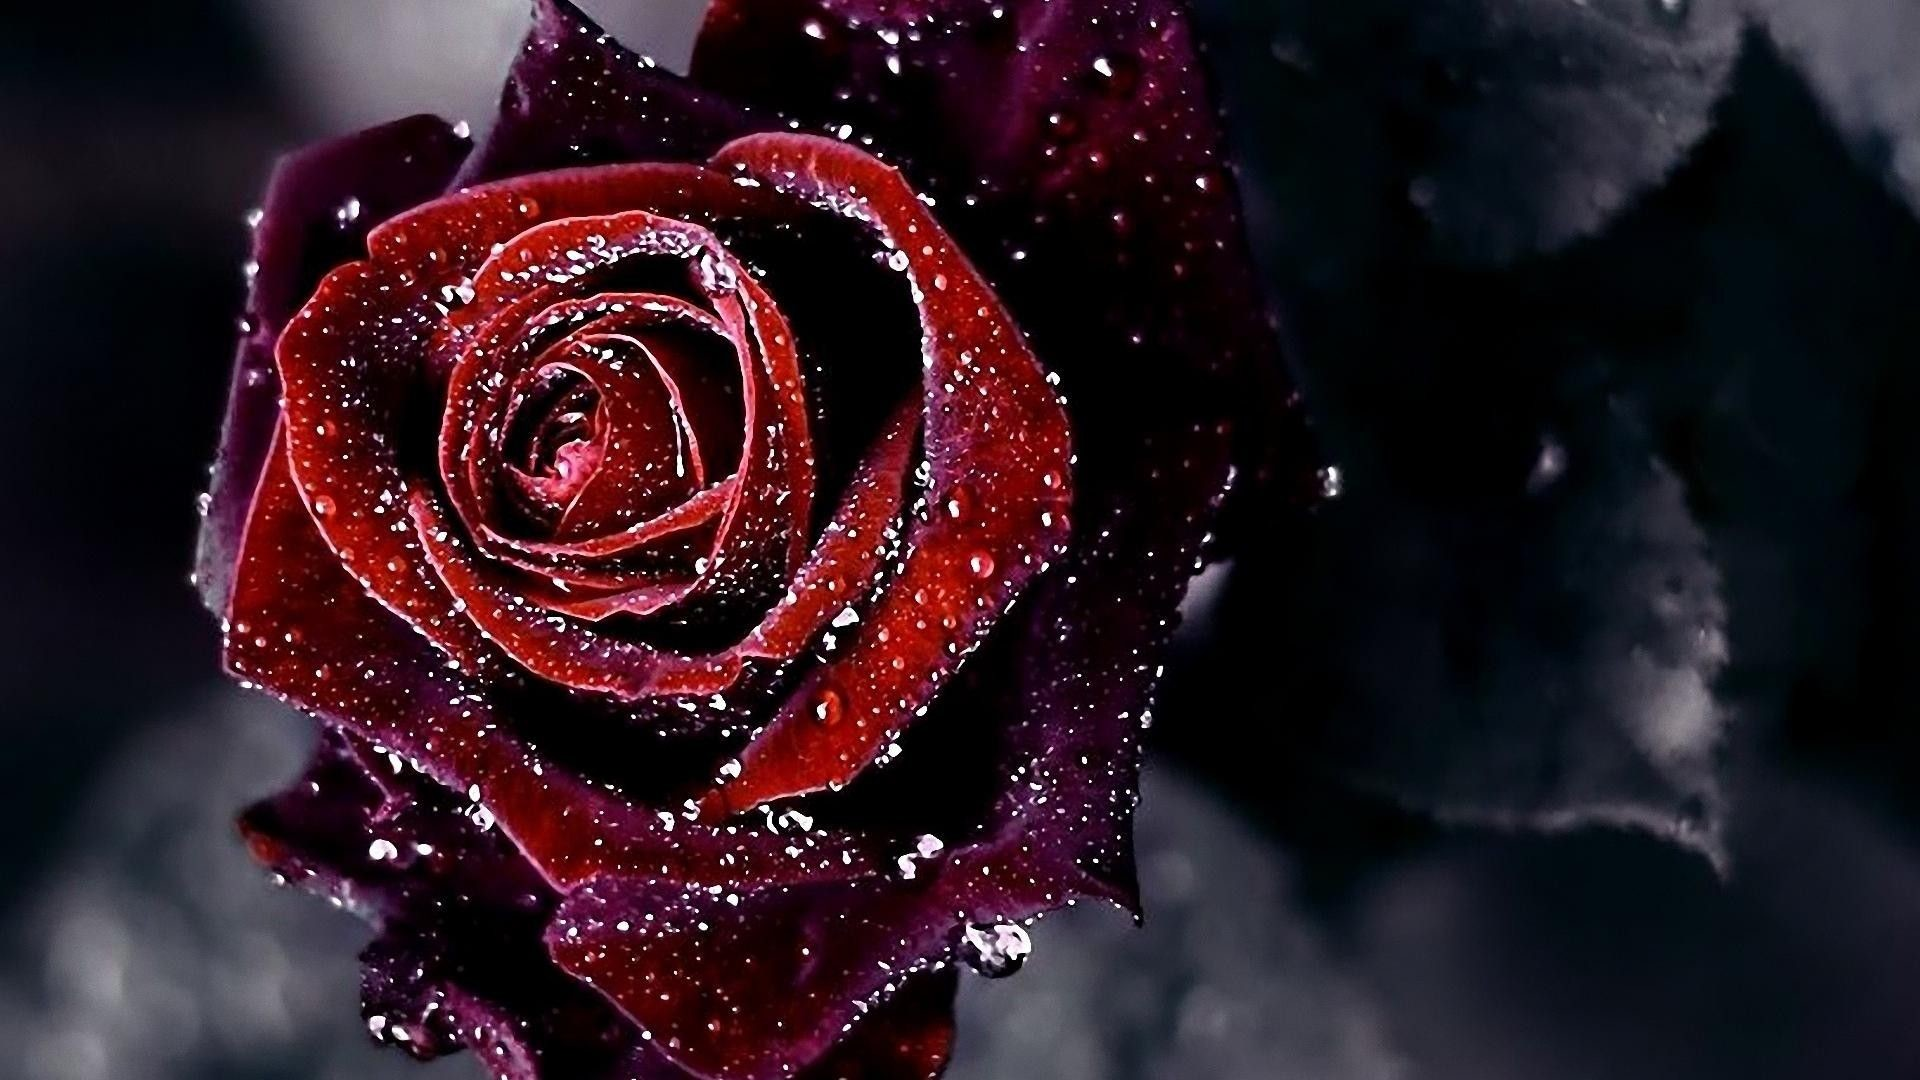 1920x1080 Black Rose Gothic Wallpapers Picture with HD Quality  px 216.53 KB